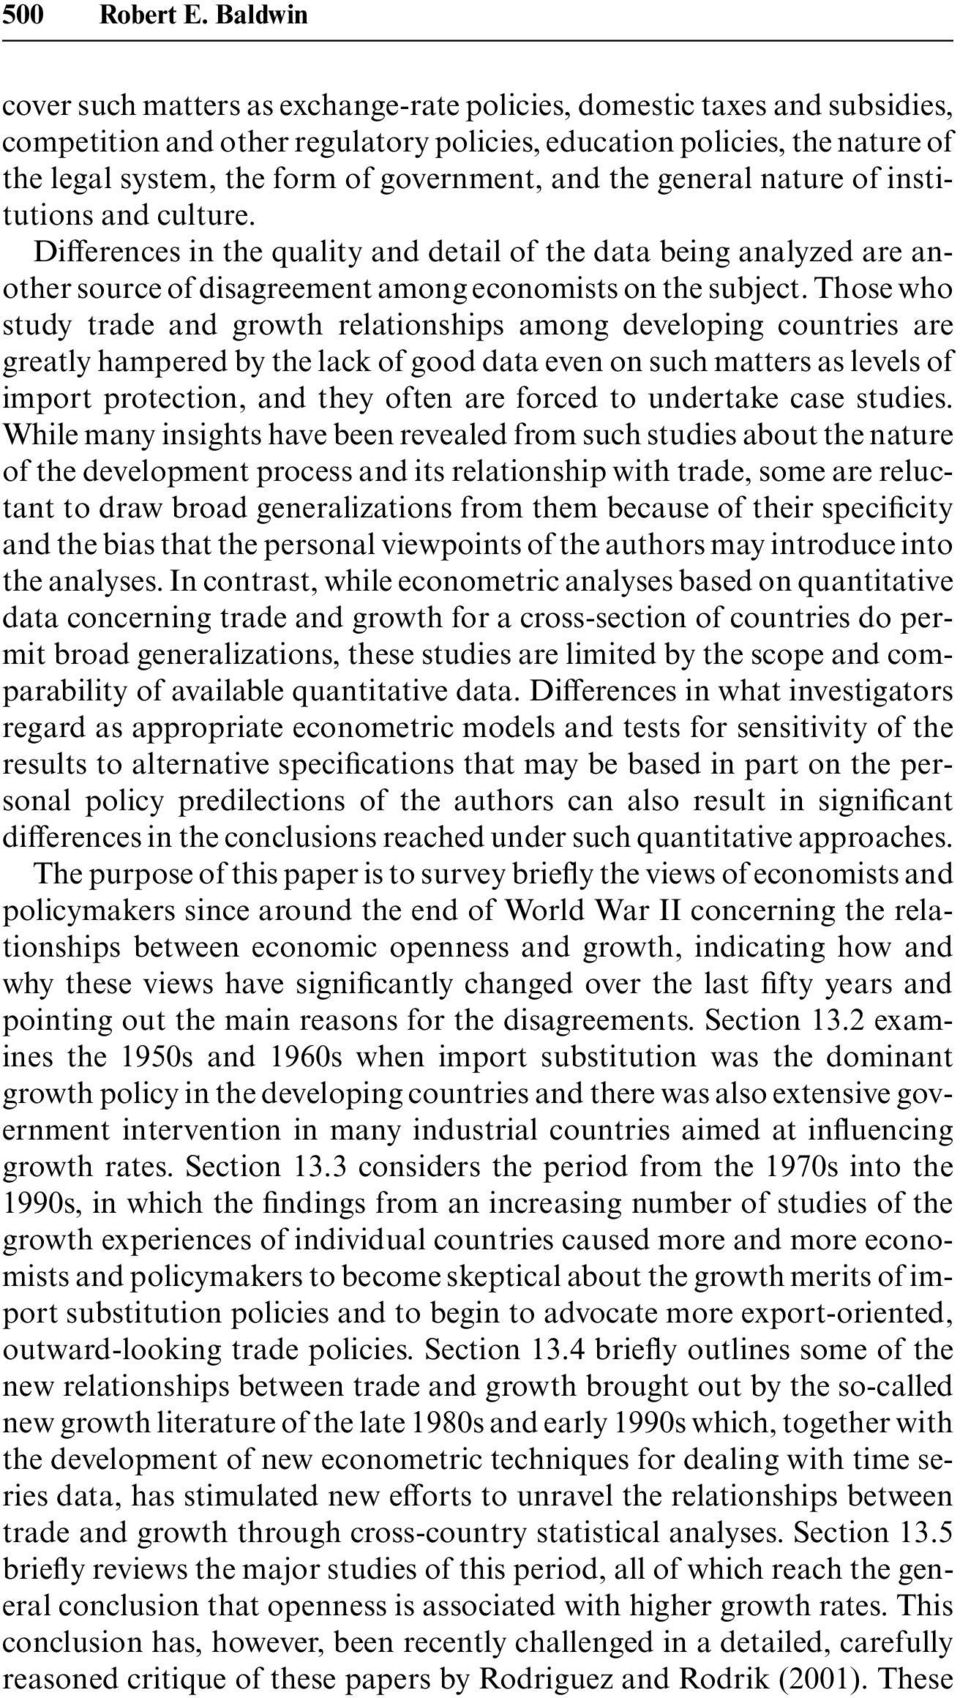 government, and the general nature of institutions and culture. Differences in the quality and detail of the data being analyzed are another source of disagreement among economists on the subject.